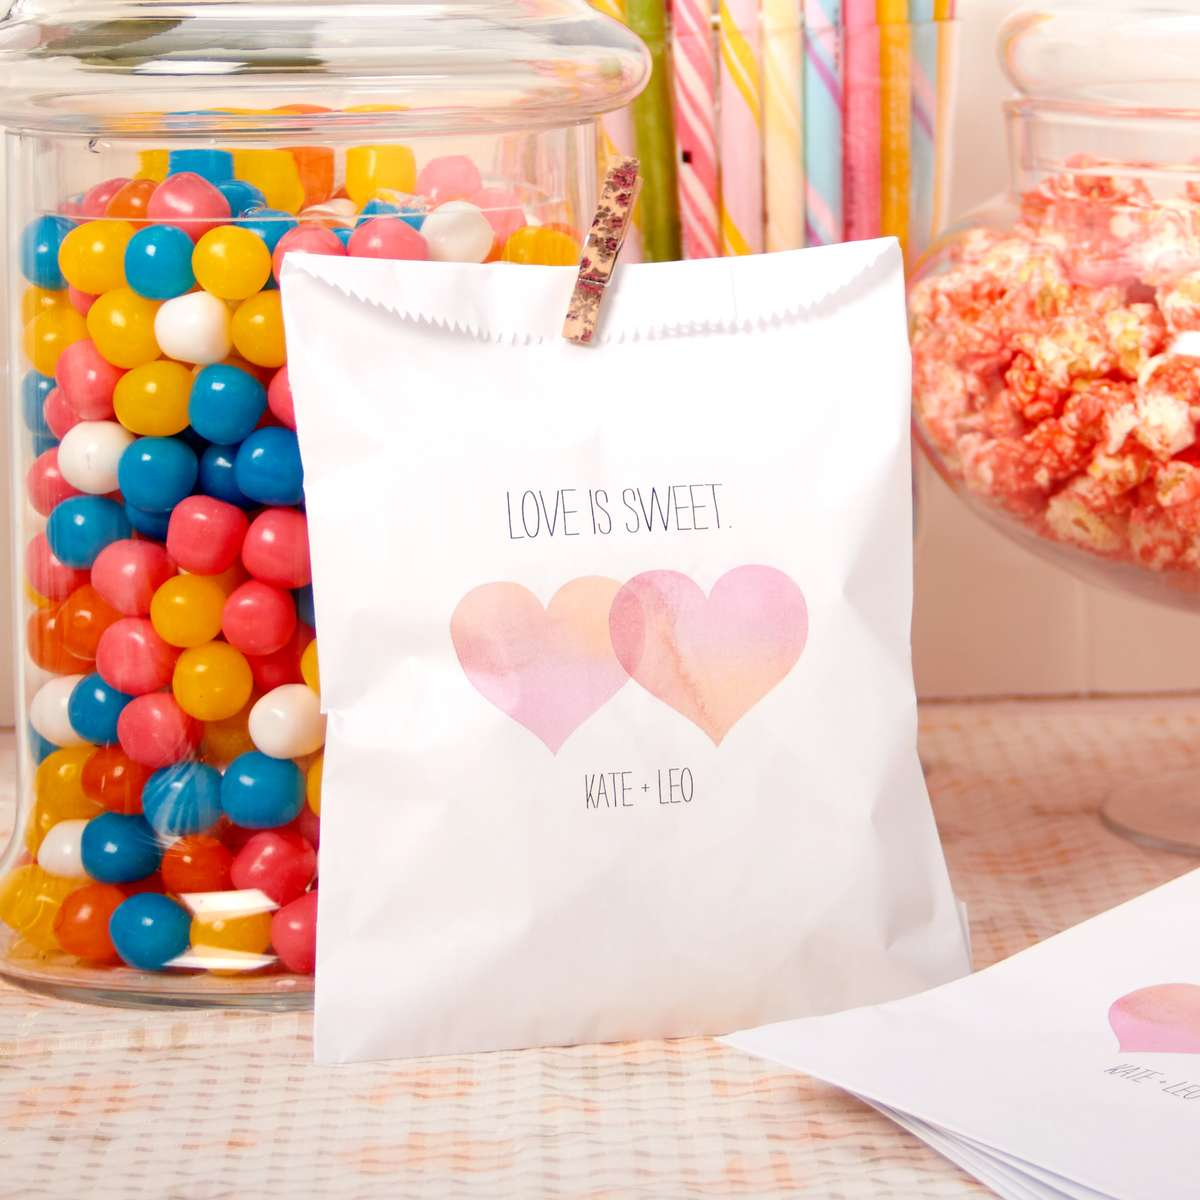 cute party favors for kid friendly wedding reception